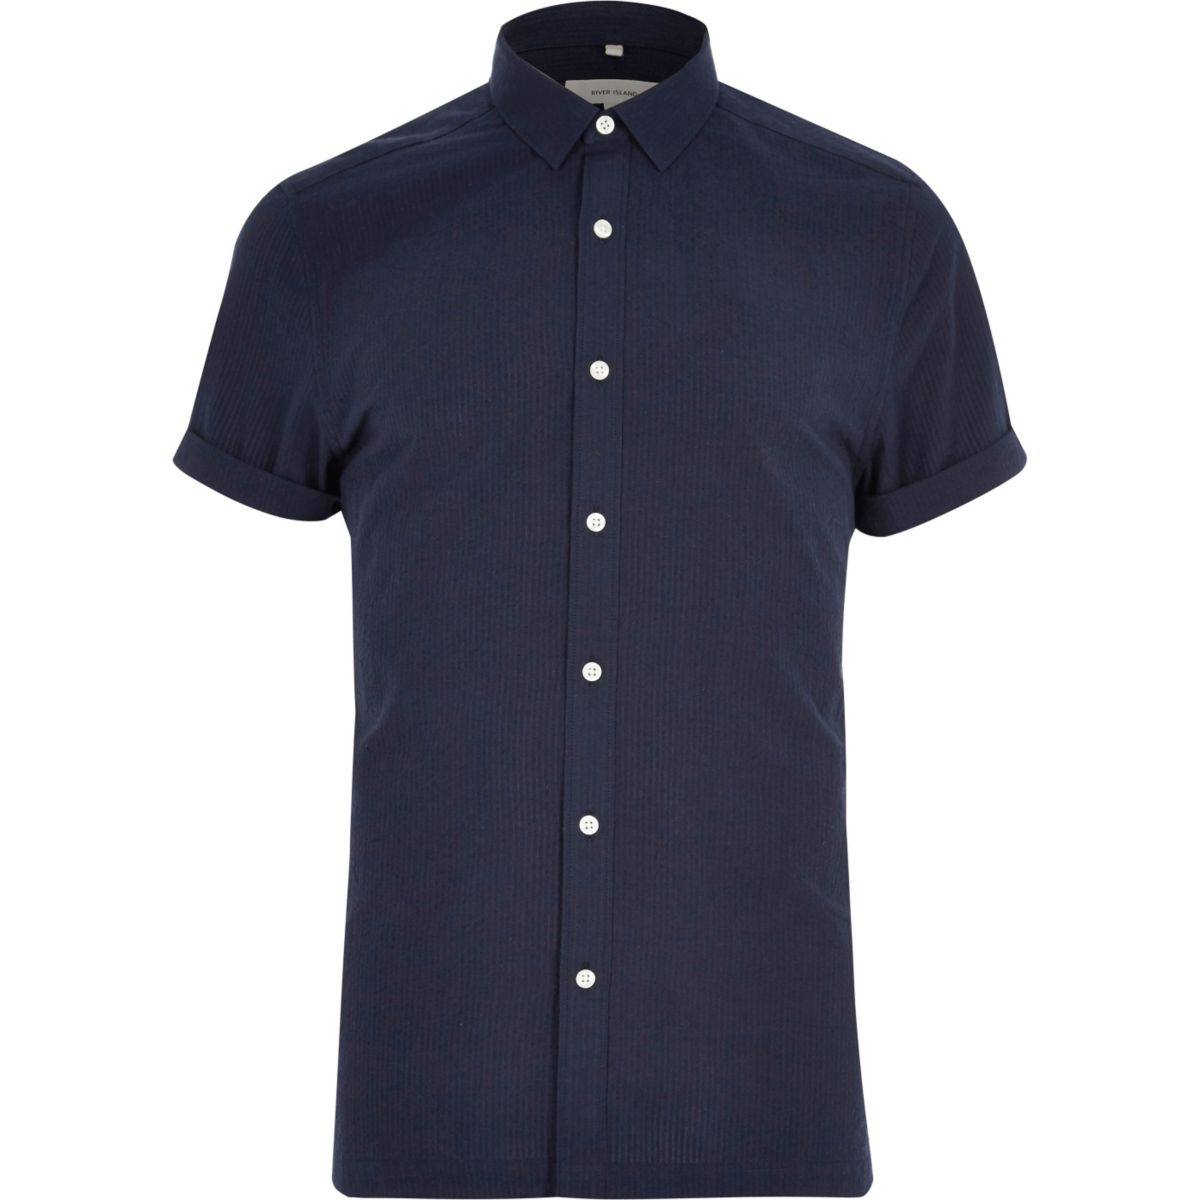 Shopping for Cheap hot sale short sleeve t shirt at Adds Laughter Store and more from tee shirt homme,tee shirt,t-shirt men,mens plus size,summer men,tees brands on dexterminduwi.ga,the Leading Trading Marketplace from China - The letter print short sleeve t-shirts men casual man's plus size funny camisetas summer men unisex cotton brand.